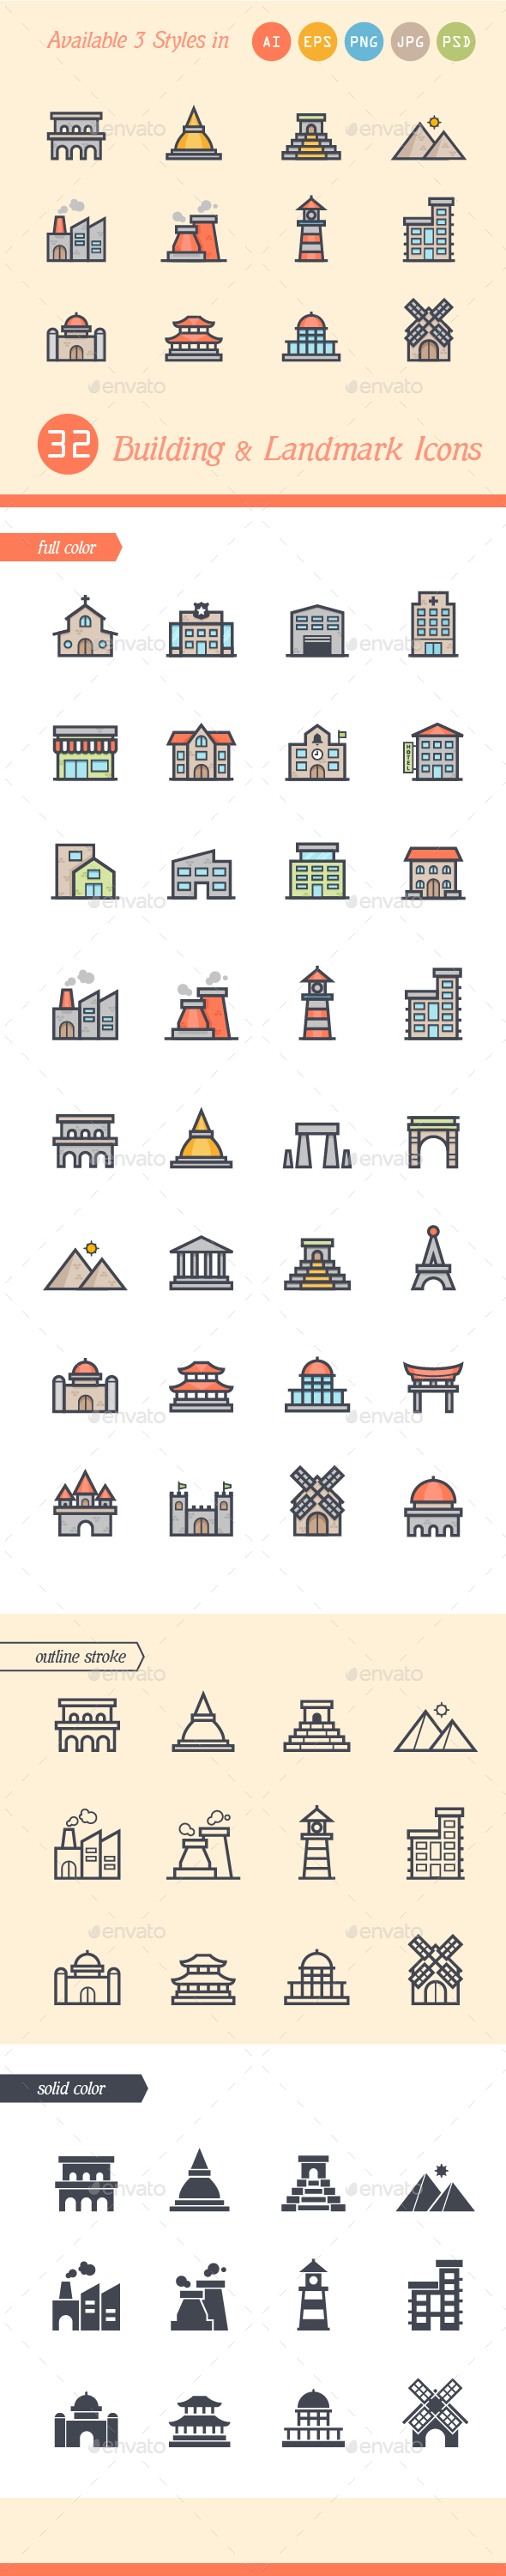 Set of 3 Styles Building and Landmark Icons